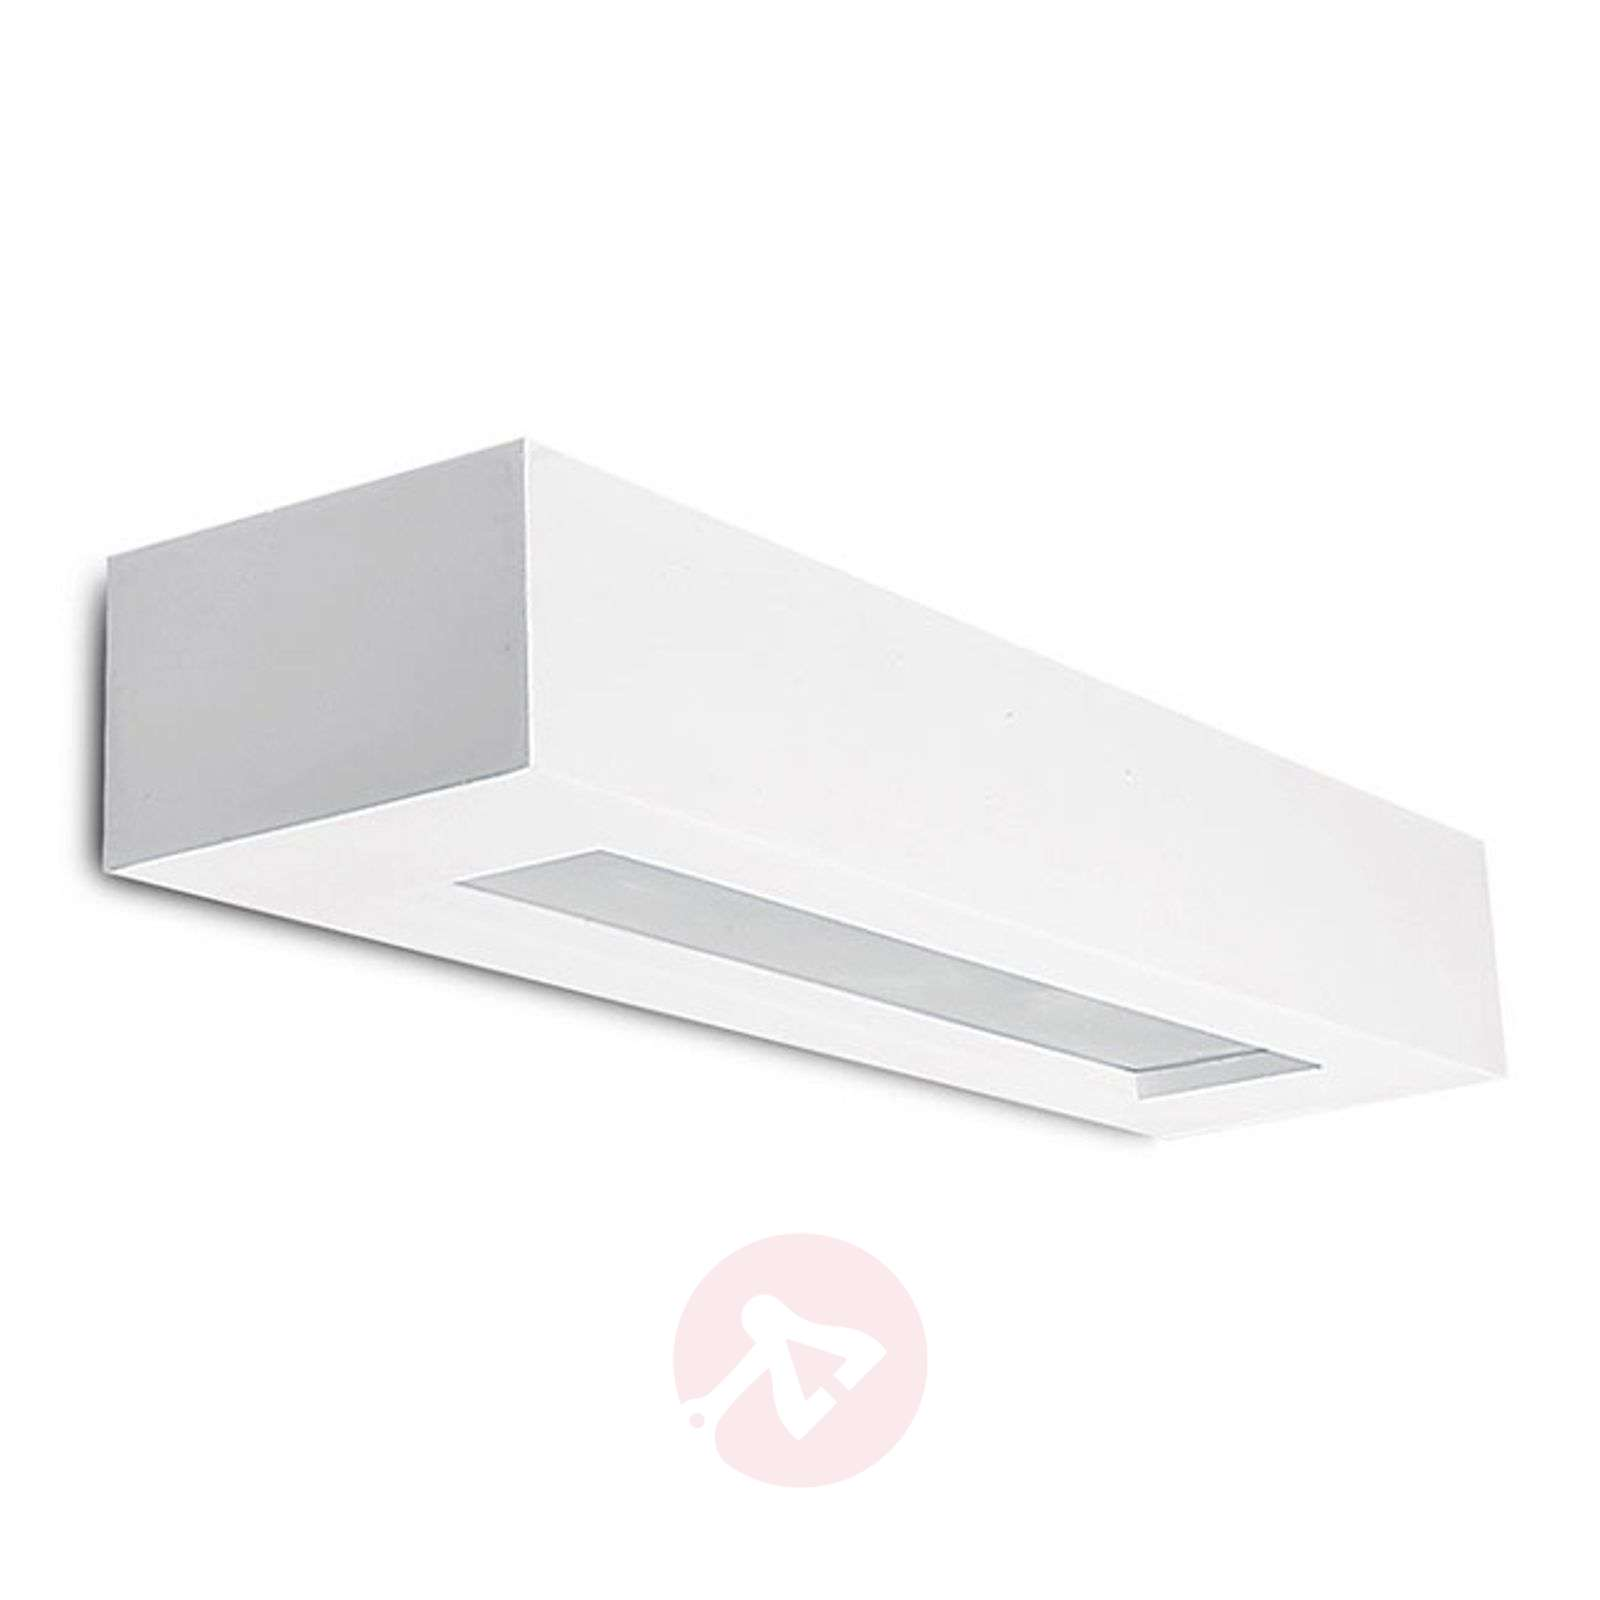 Matteo Wall Light Square Shape-9613009-01